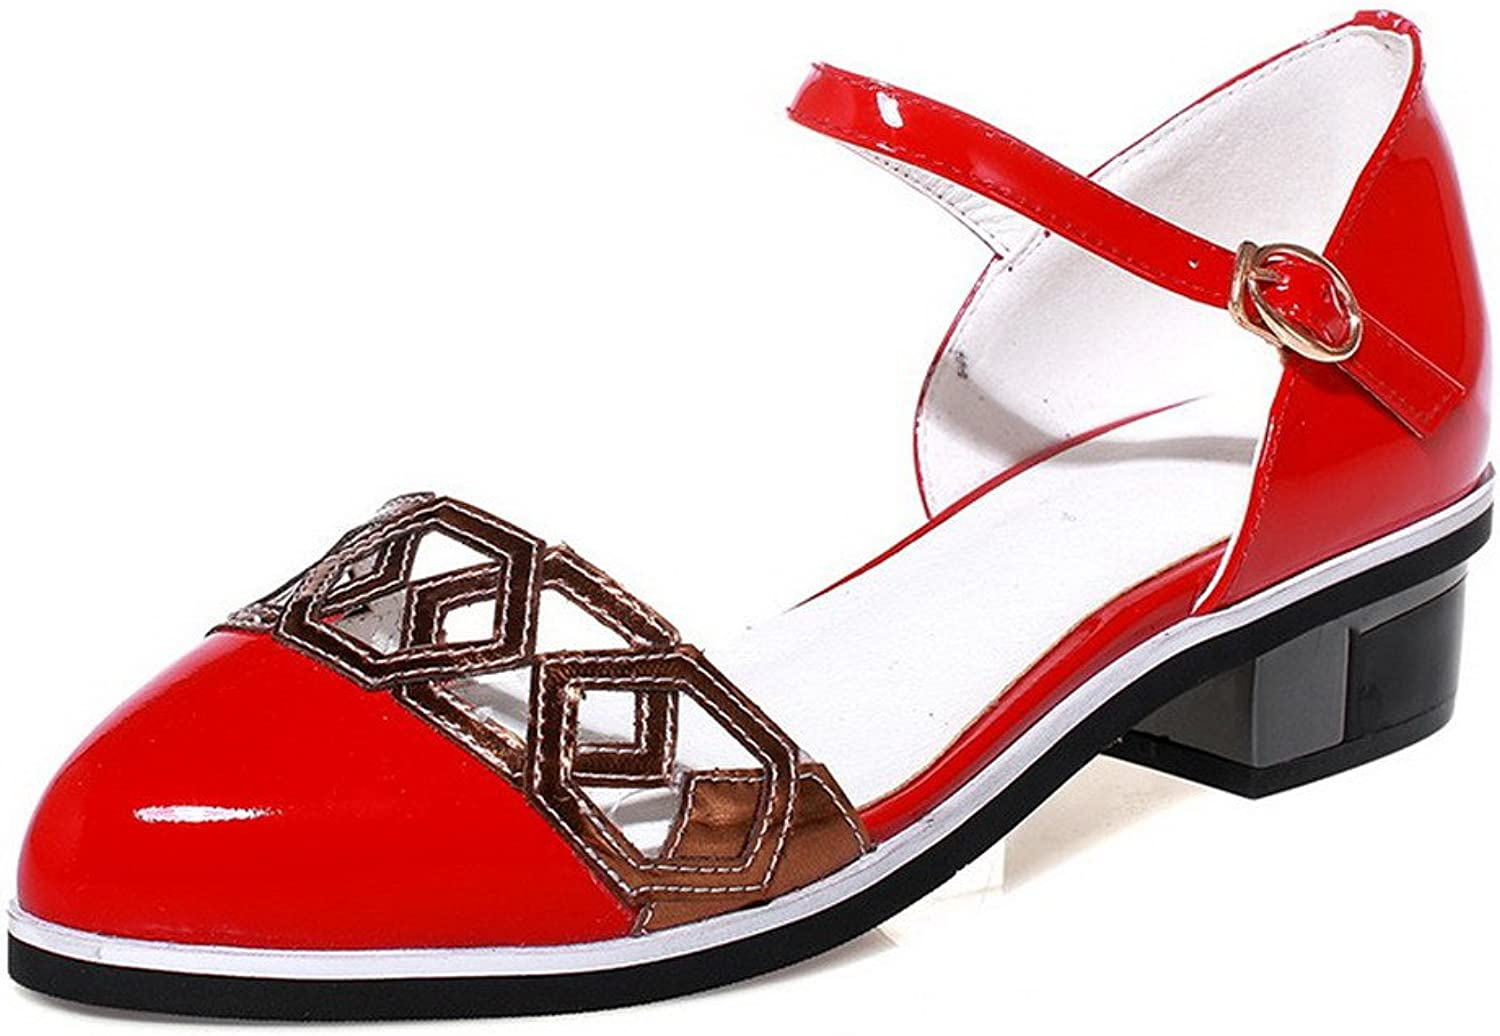 AmoonyFashion Women's Soft Material Buckle Closed Toe Low-Heels Assorted color Sandals